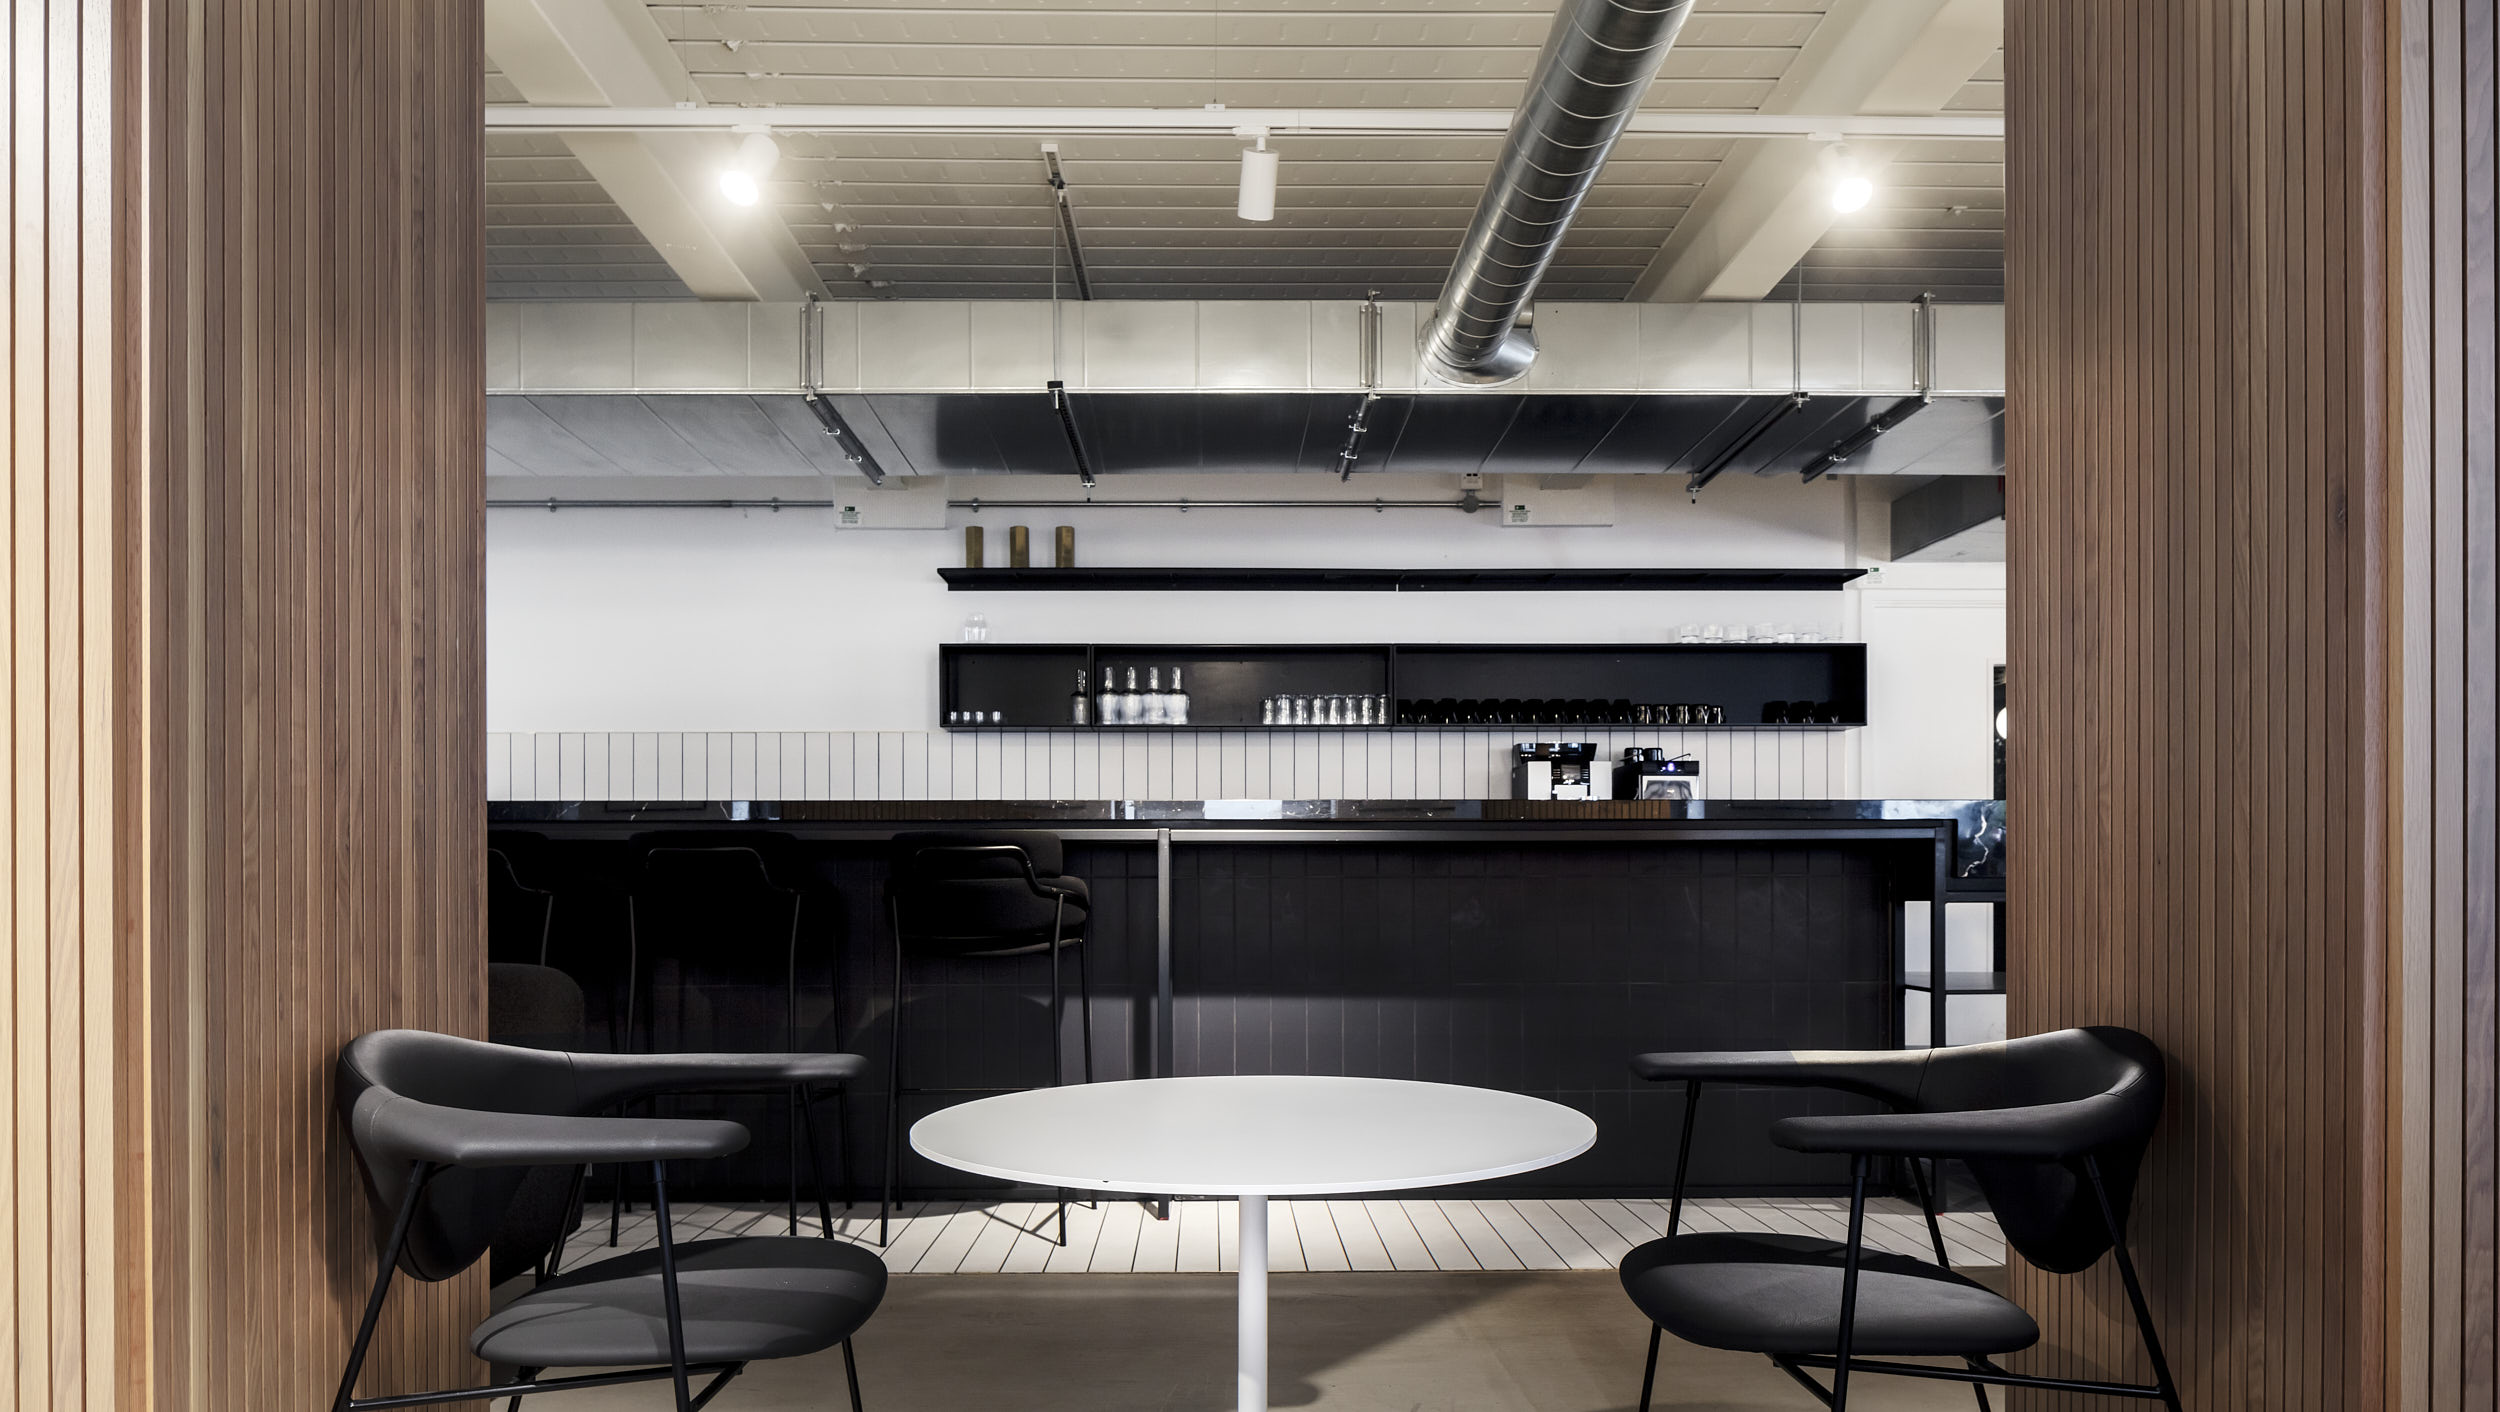 Design is by Moxon Architects who are based in London and Crathie.